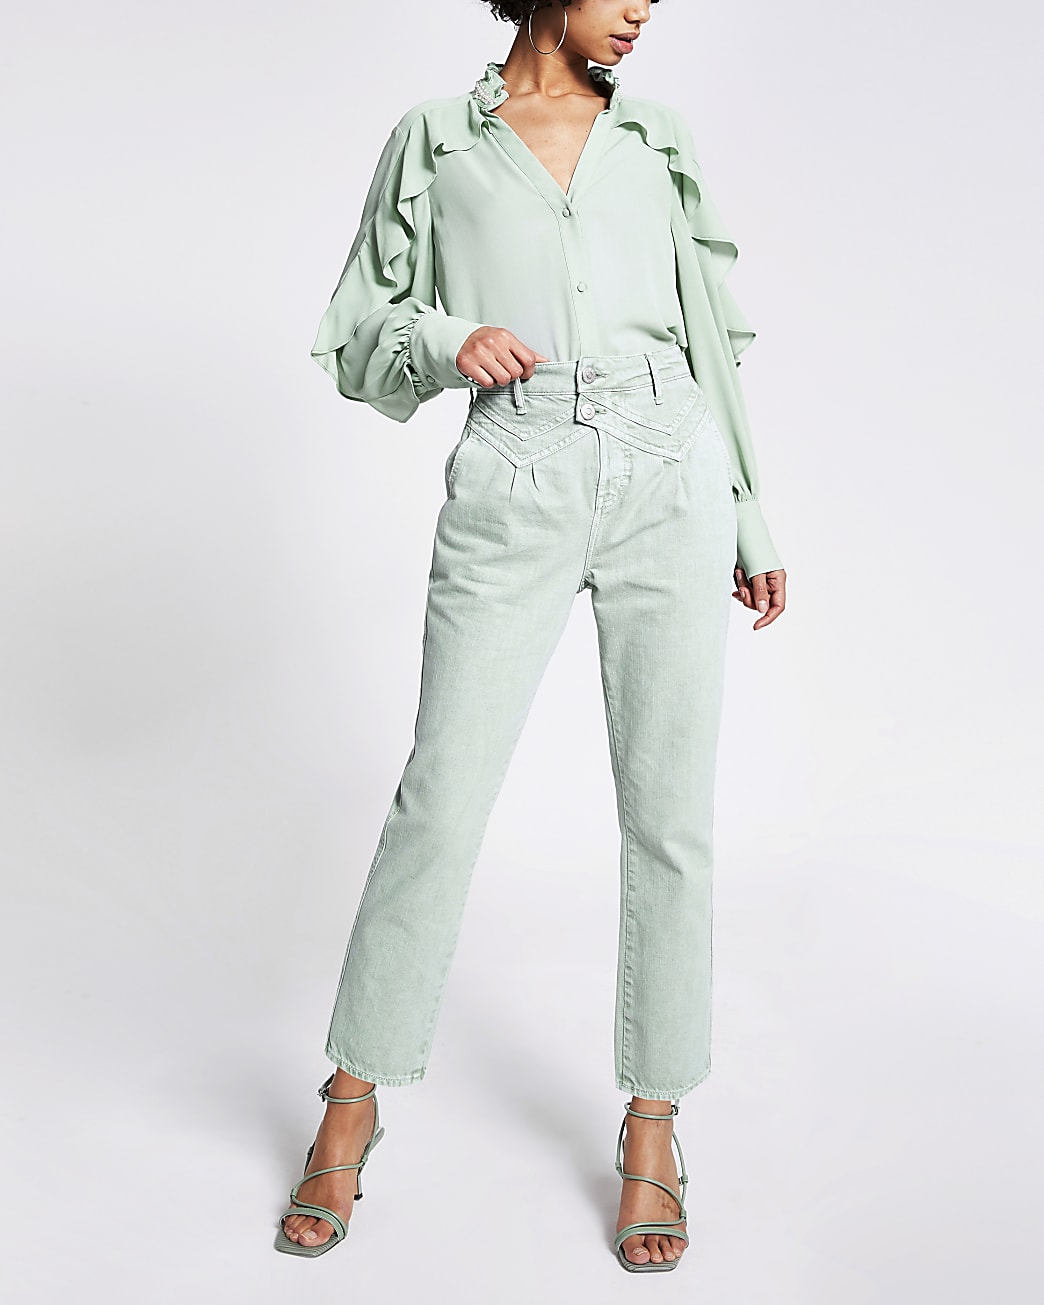 Green high waisted tapered leg jeans